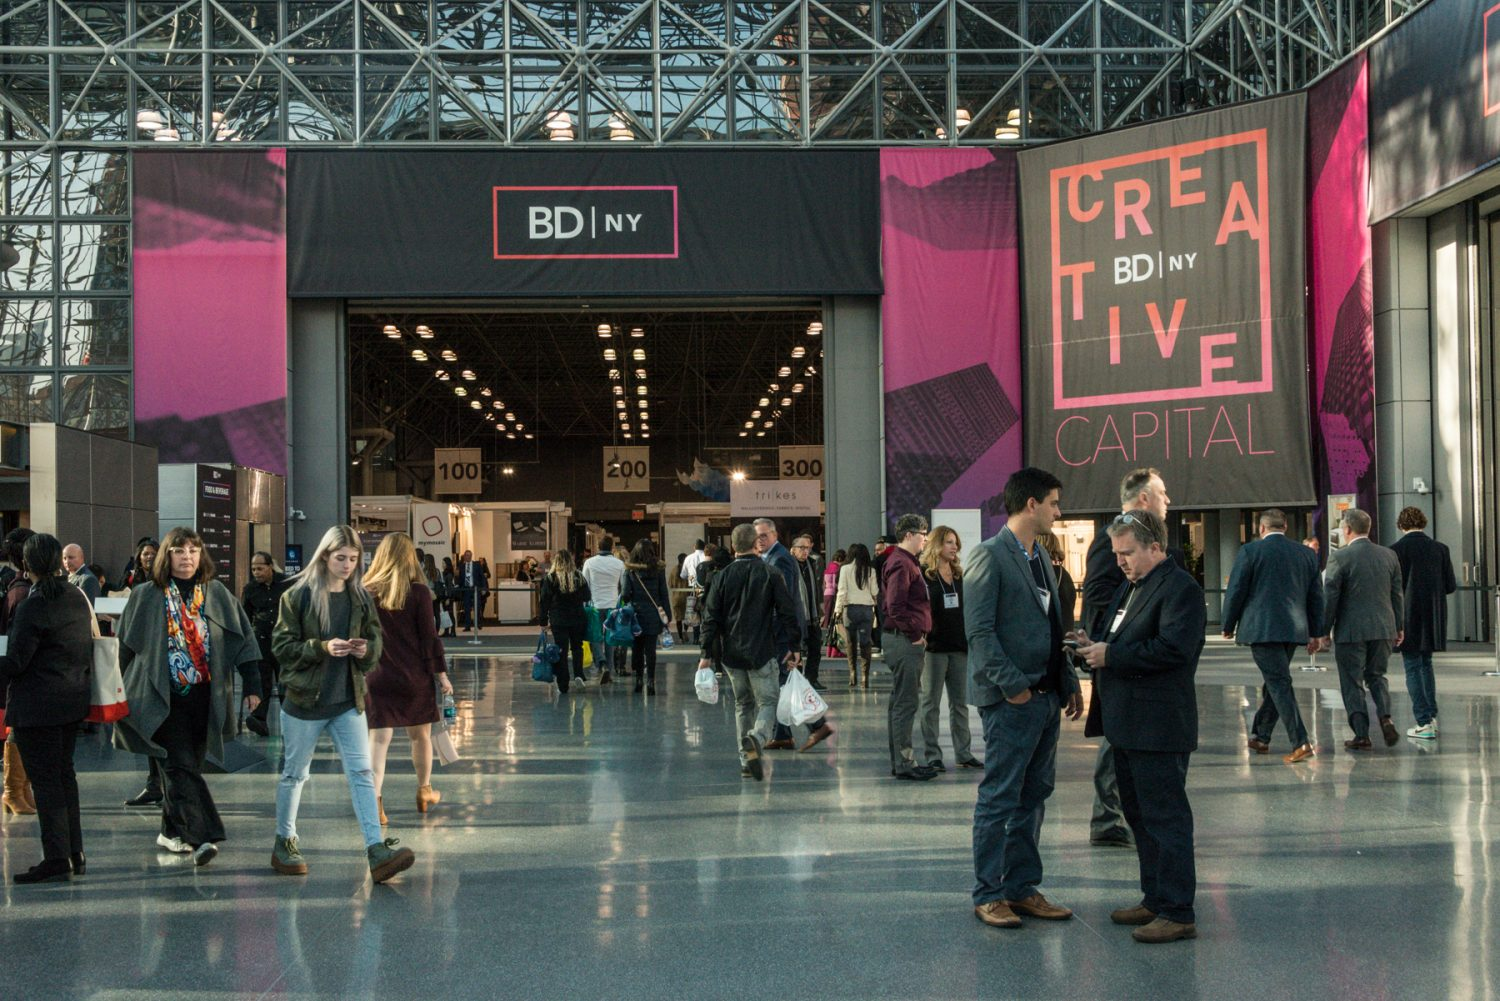 bdny 2019 BDNY 2019: Everything That You Missed bdny 2019 missed